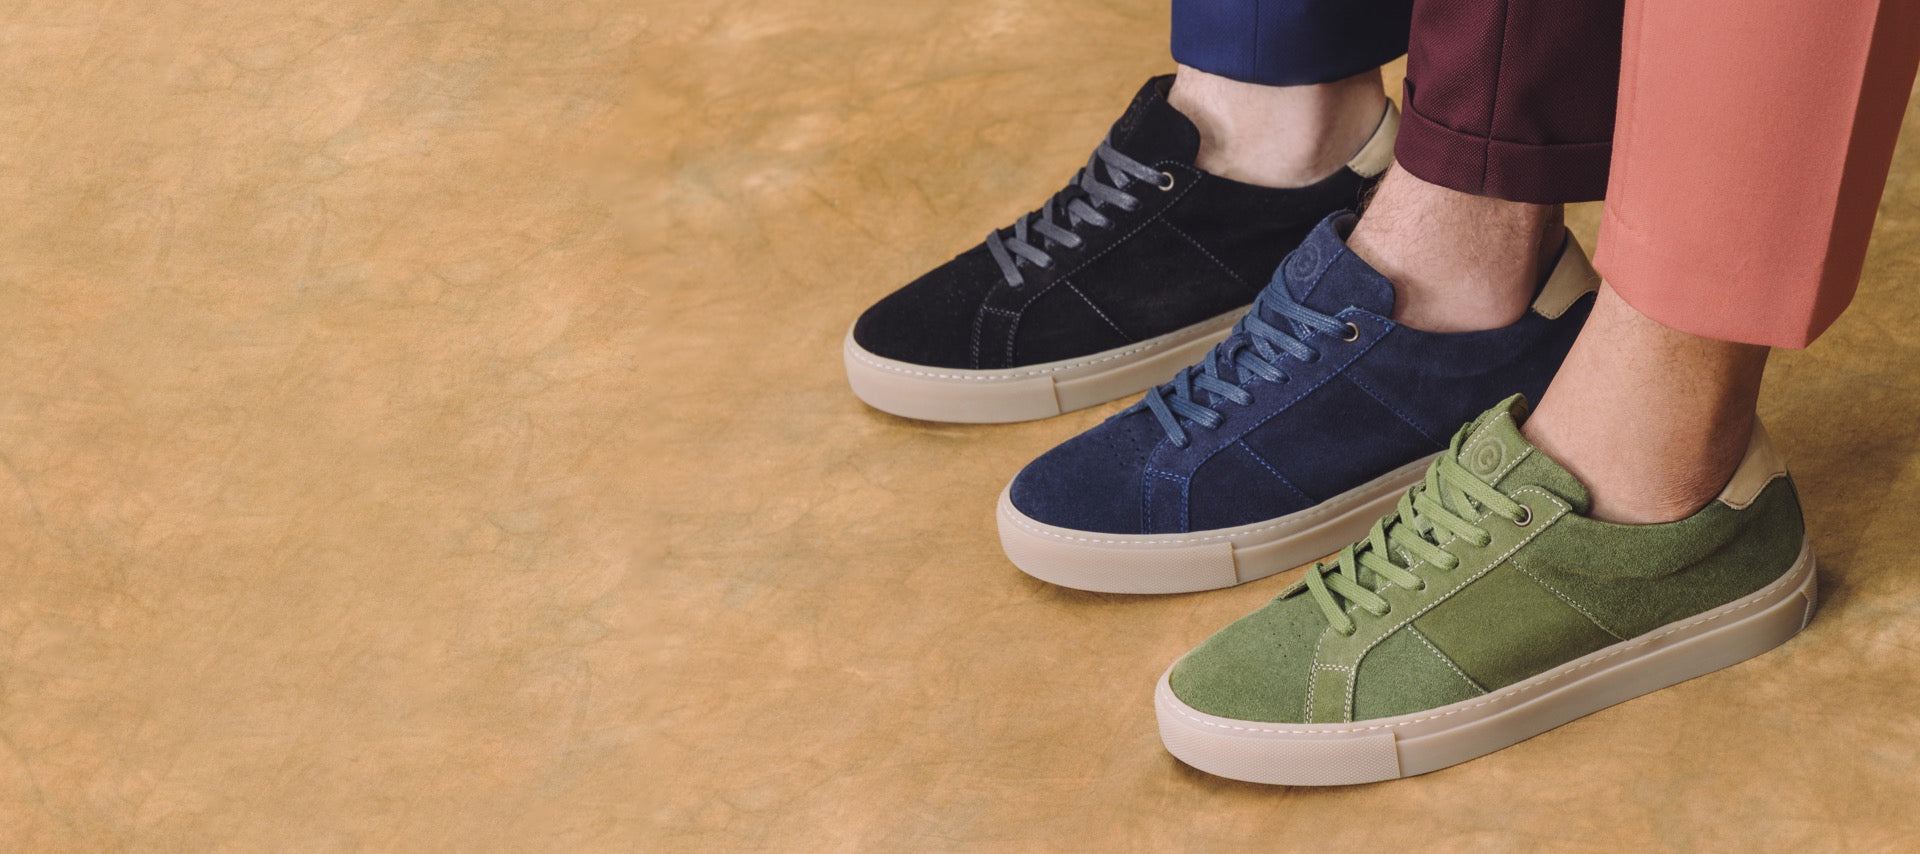 GREATS Royale Cuoio - Shop Now